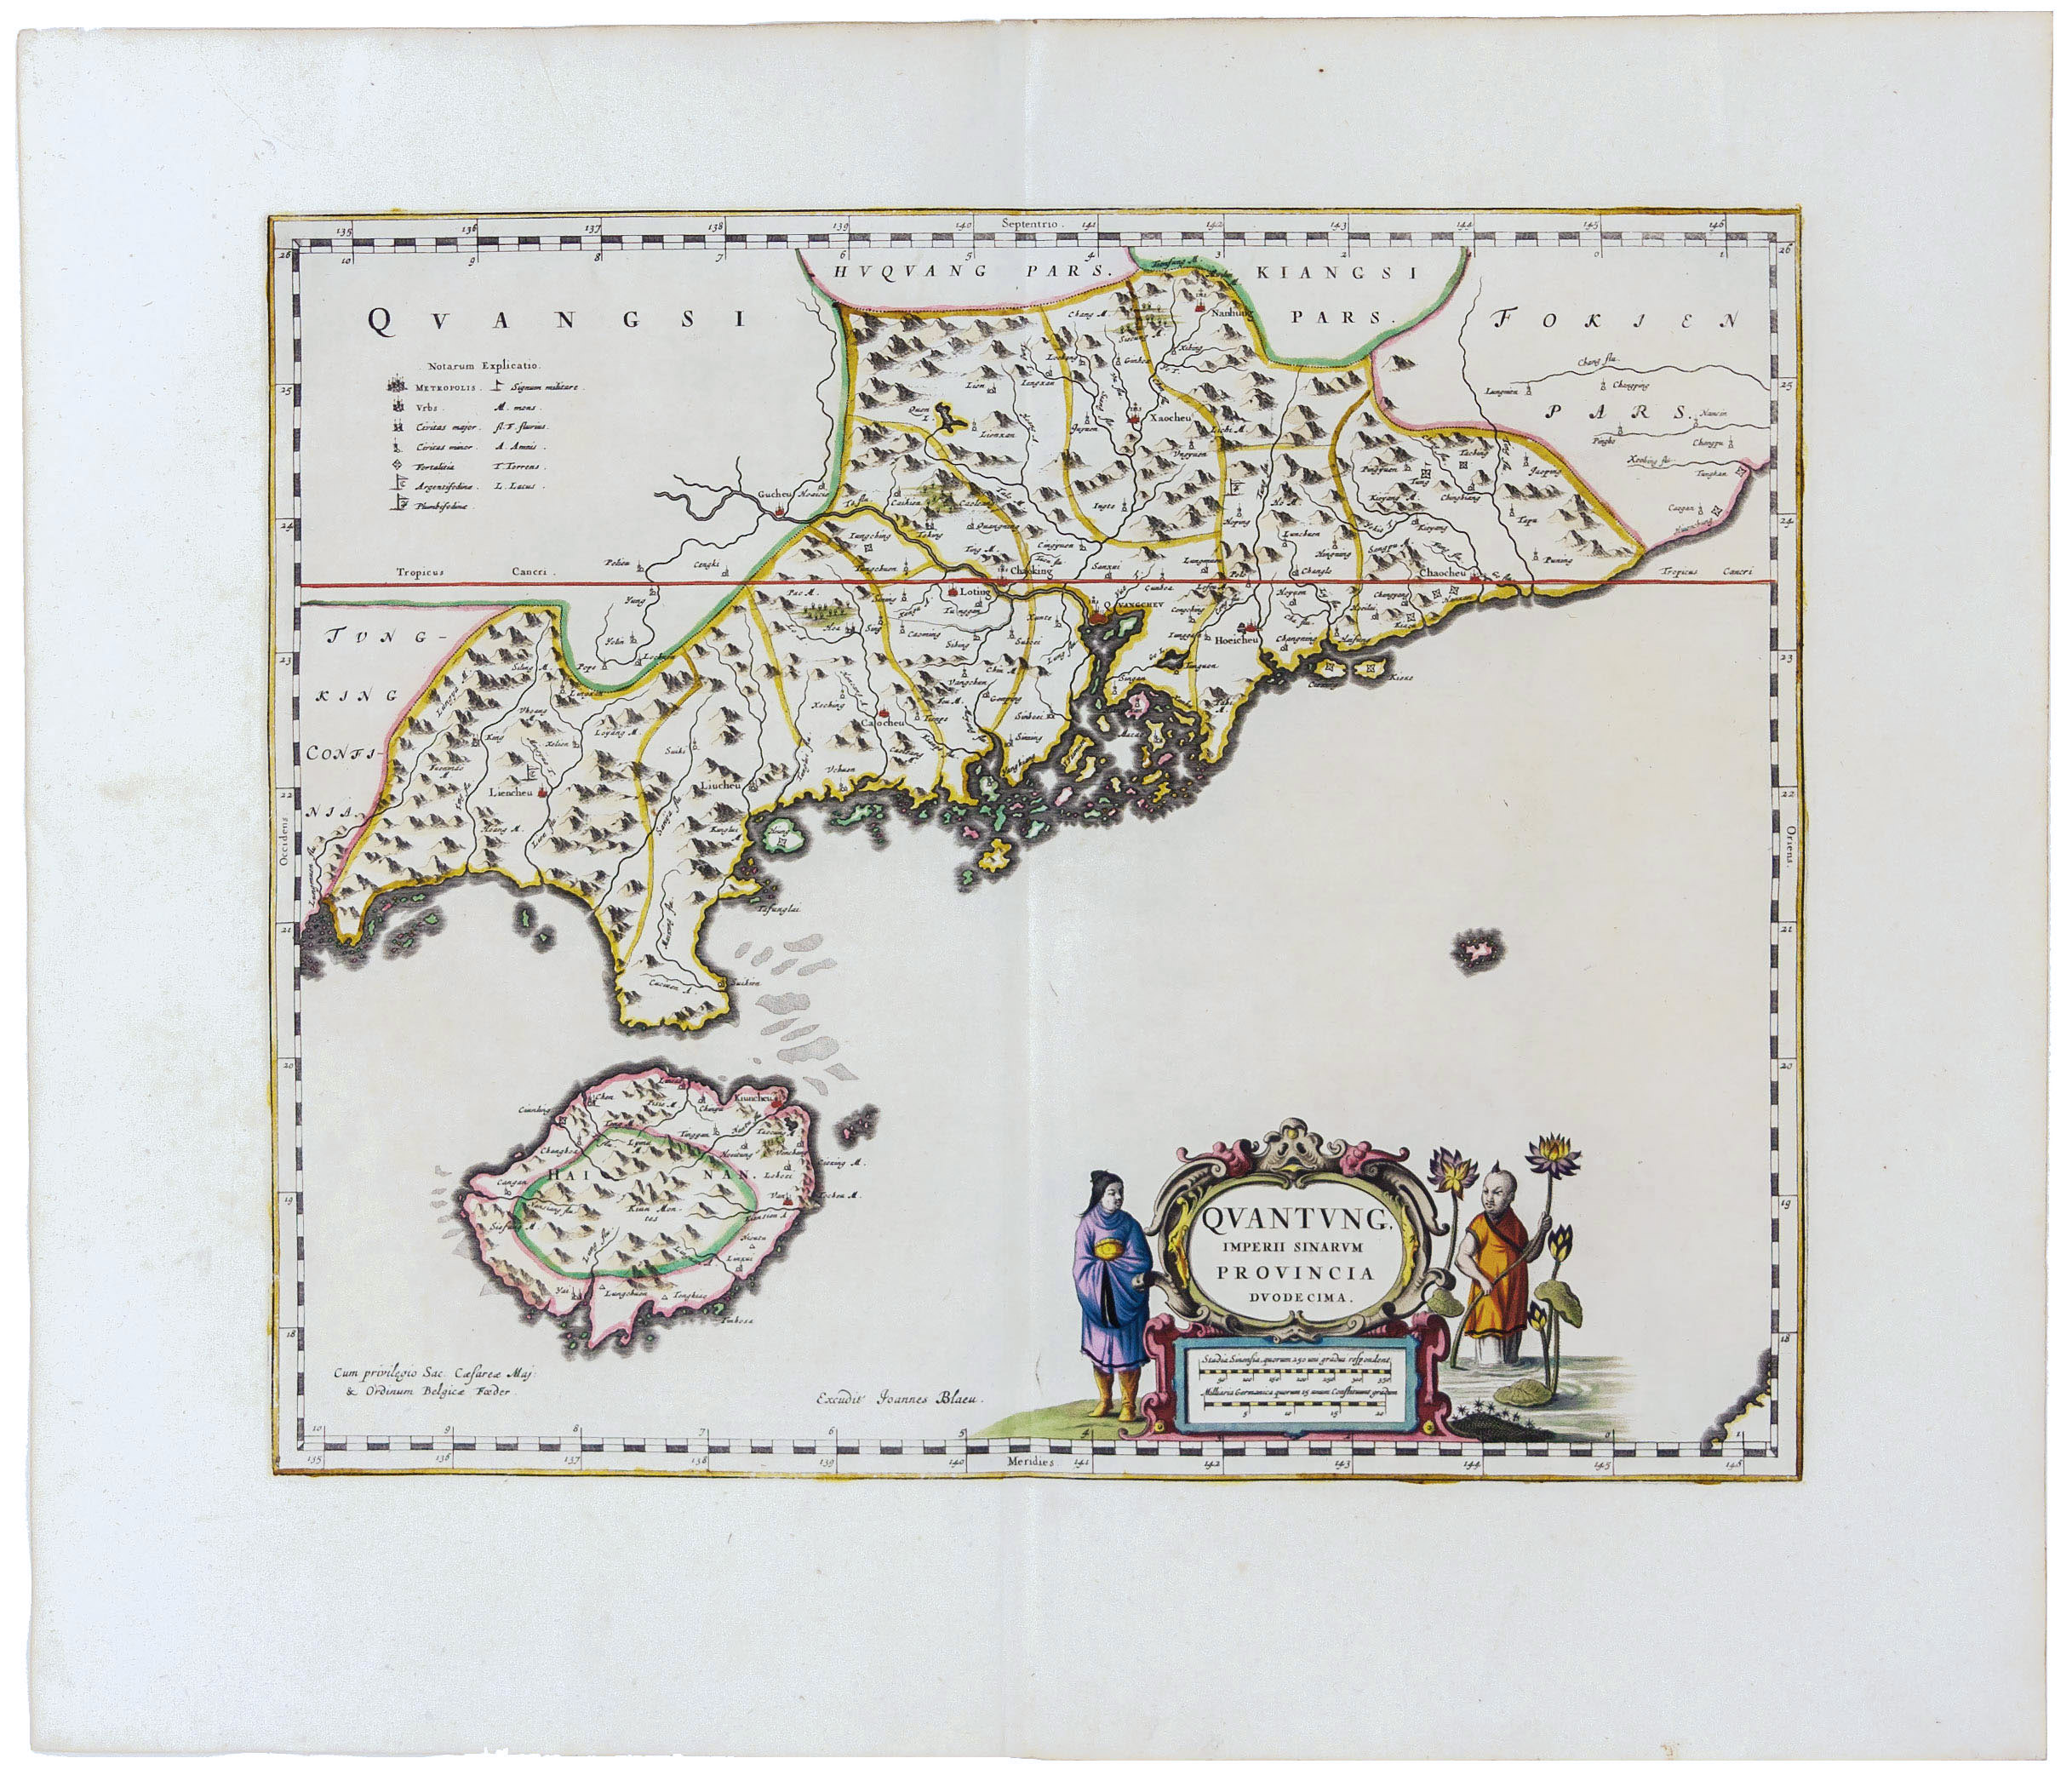 Mint Example of the Earliest Hong Kong Area Map